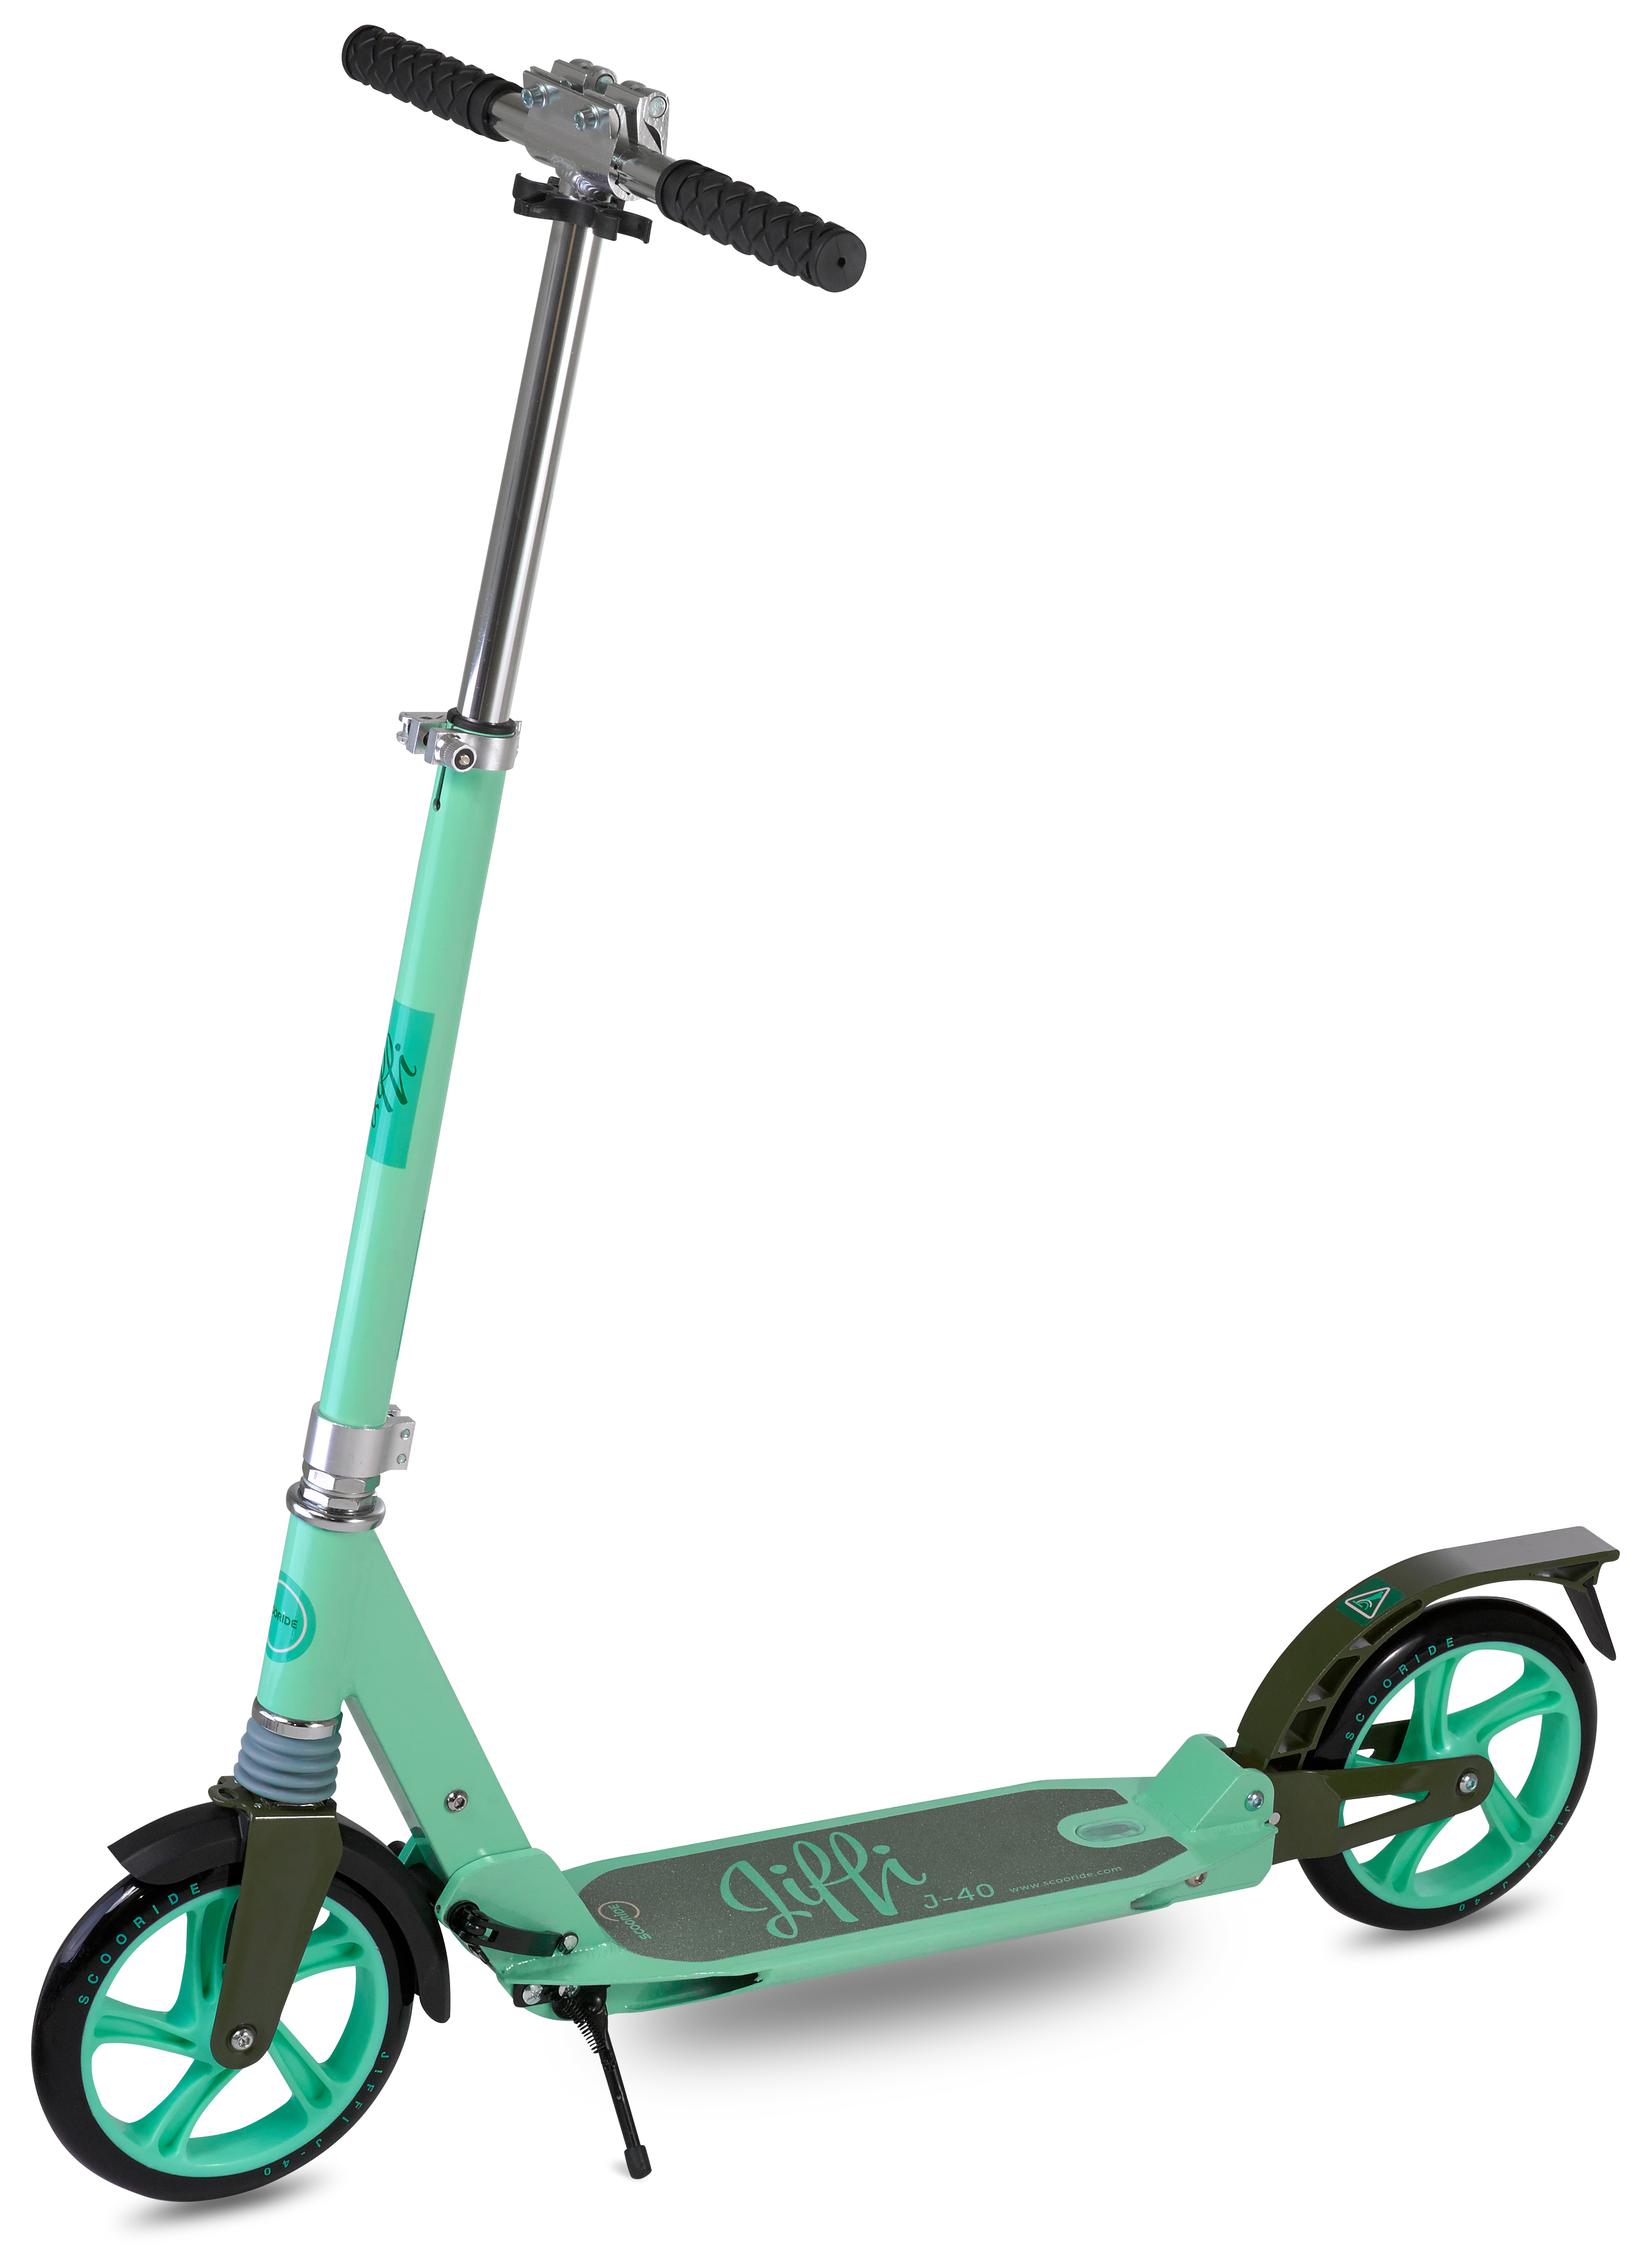 Scooride SRJ01-GN Large Scooter, Green